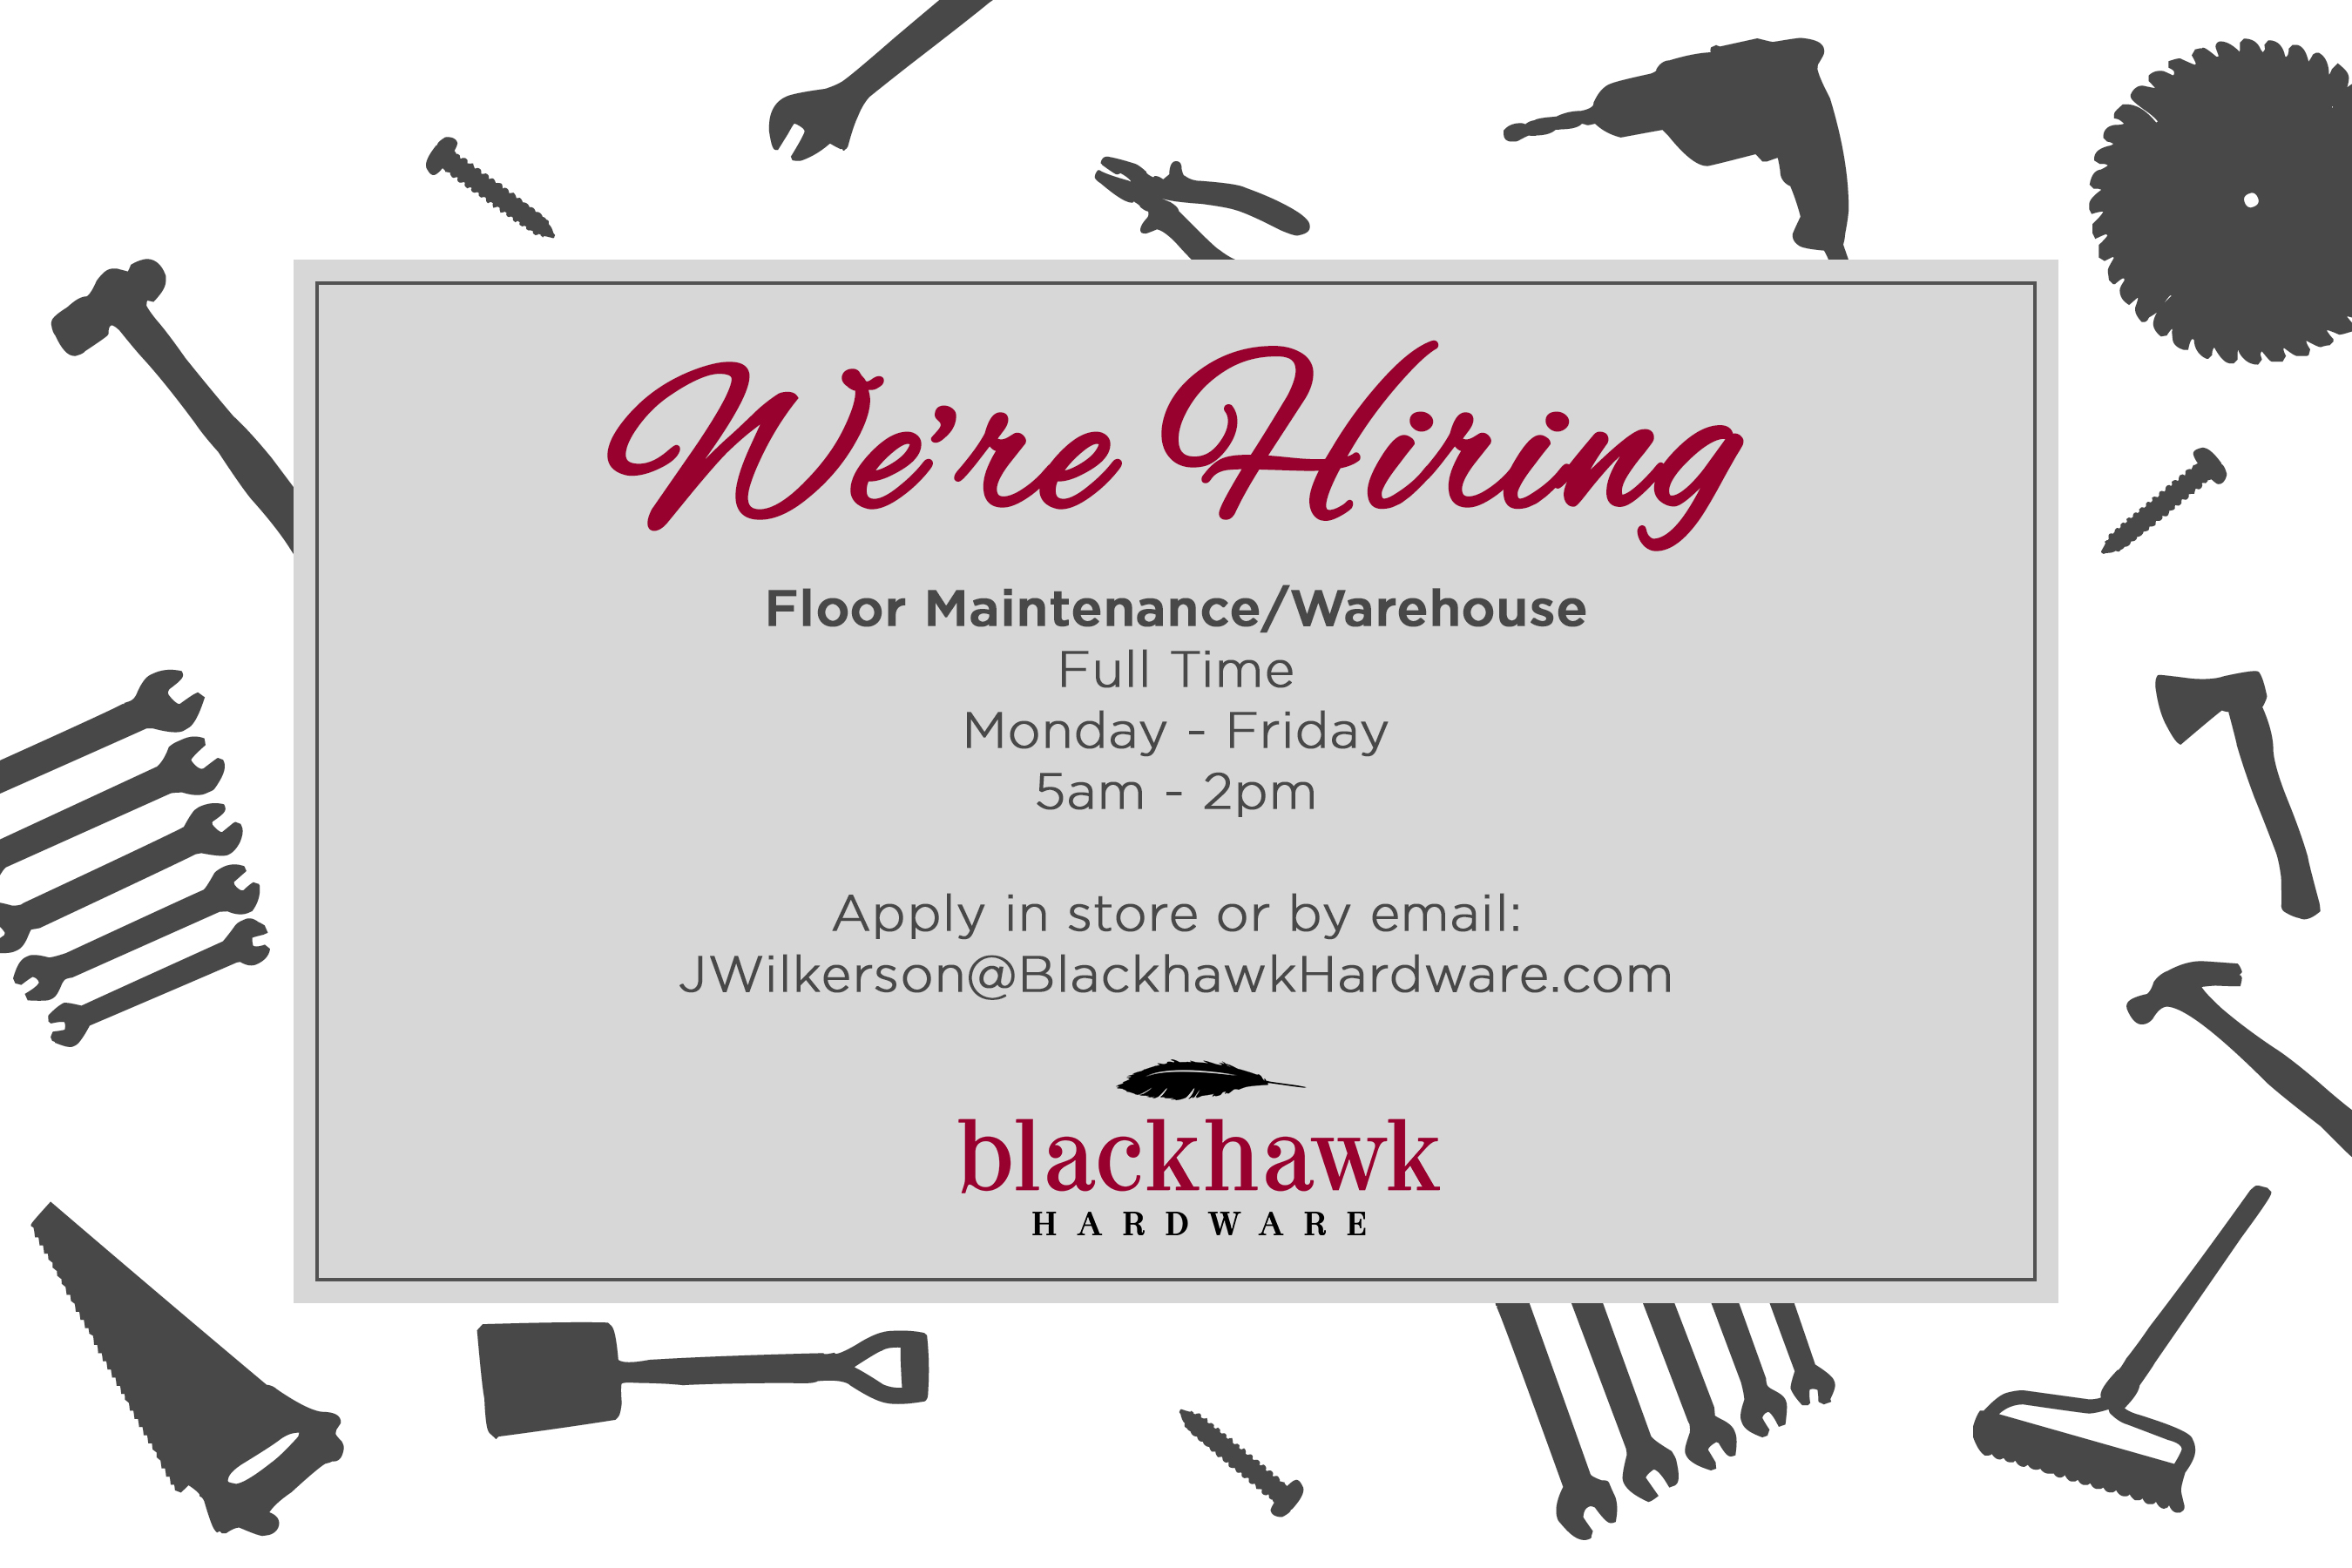 BLackhawk Hardware is looking for help in Floor Maintenance and the Warehouse